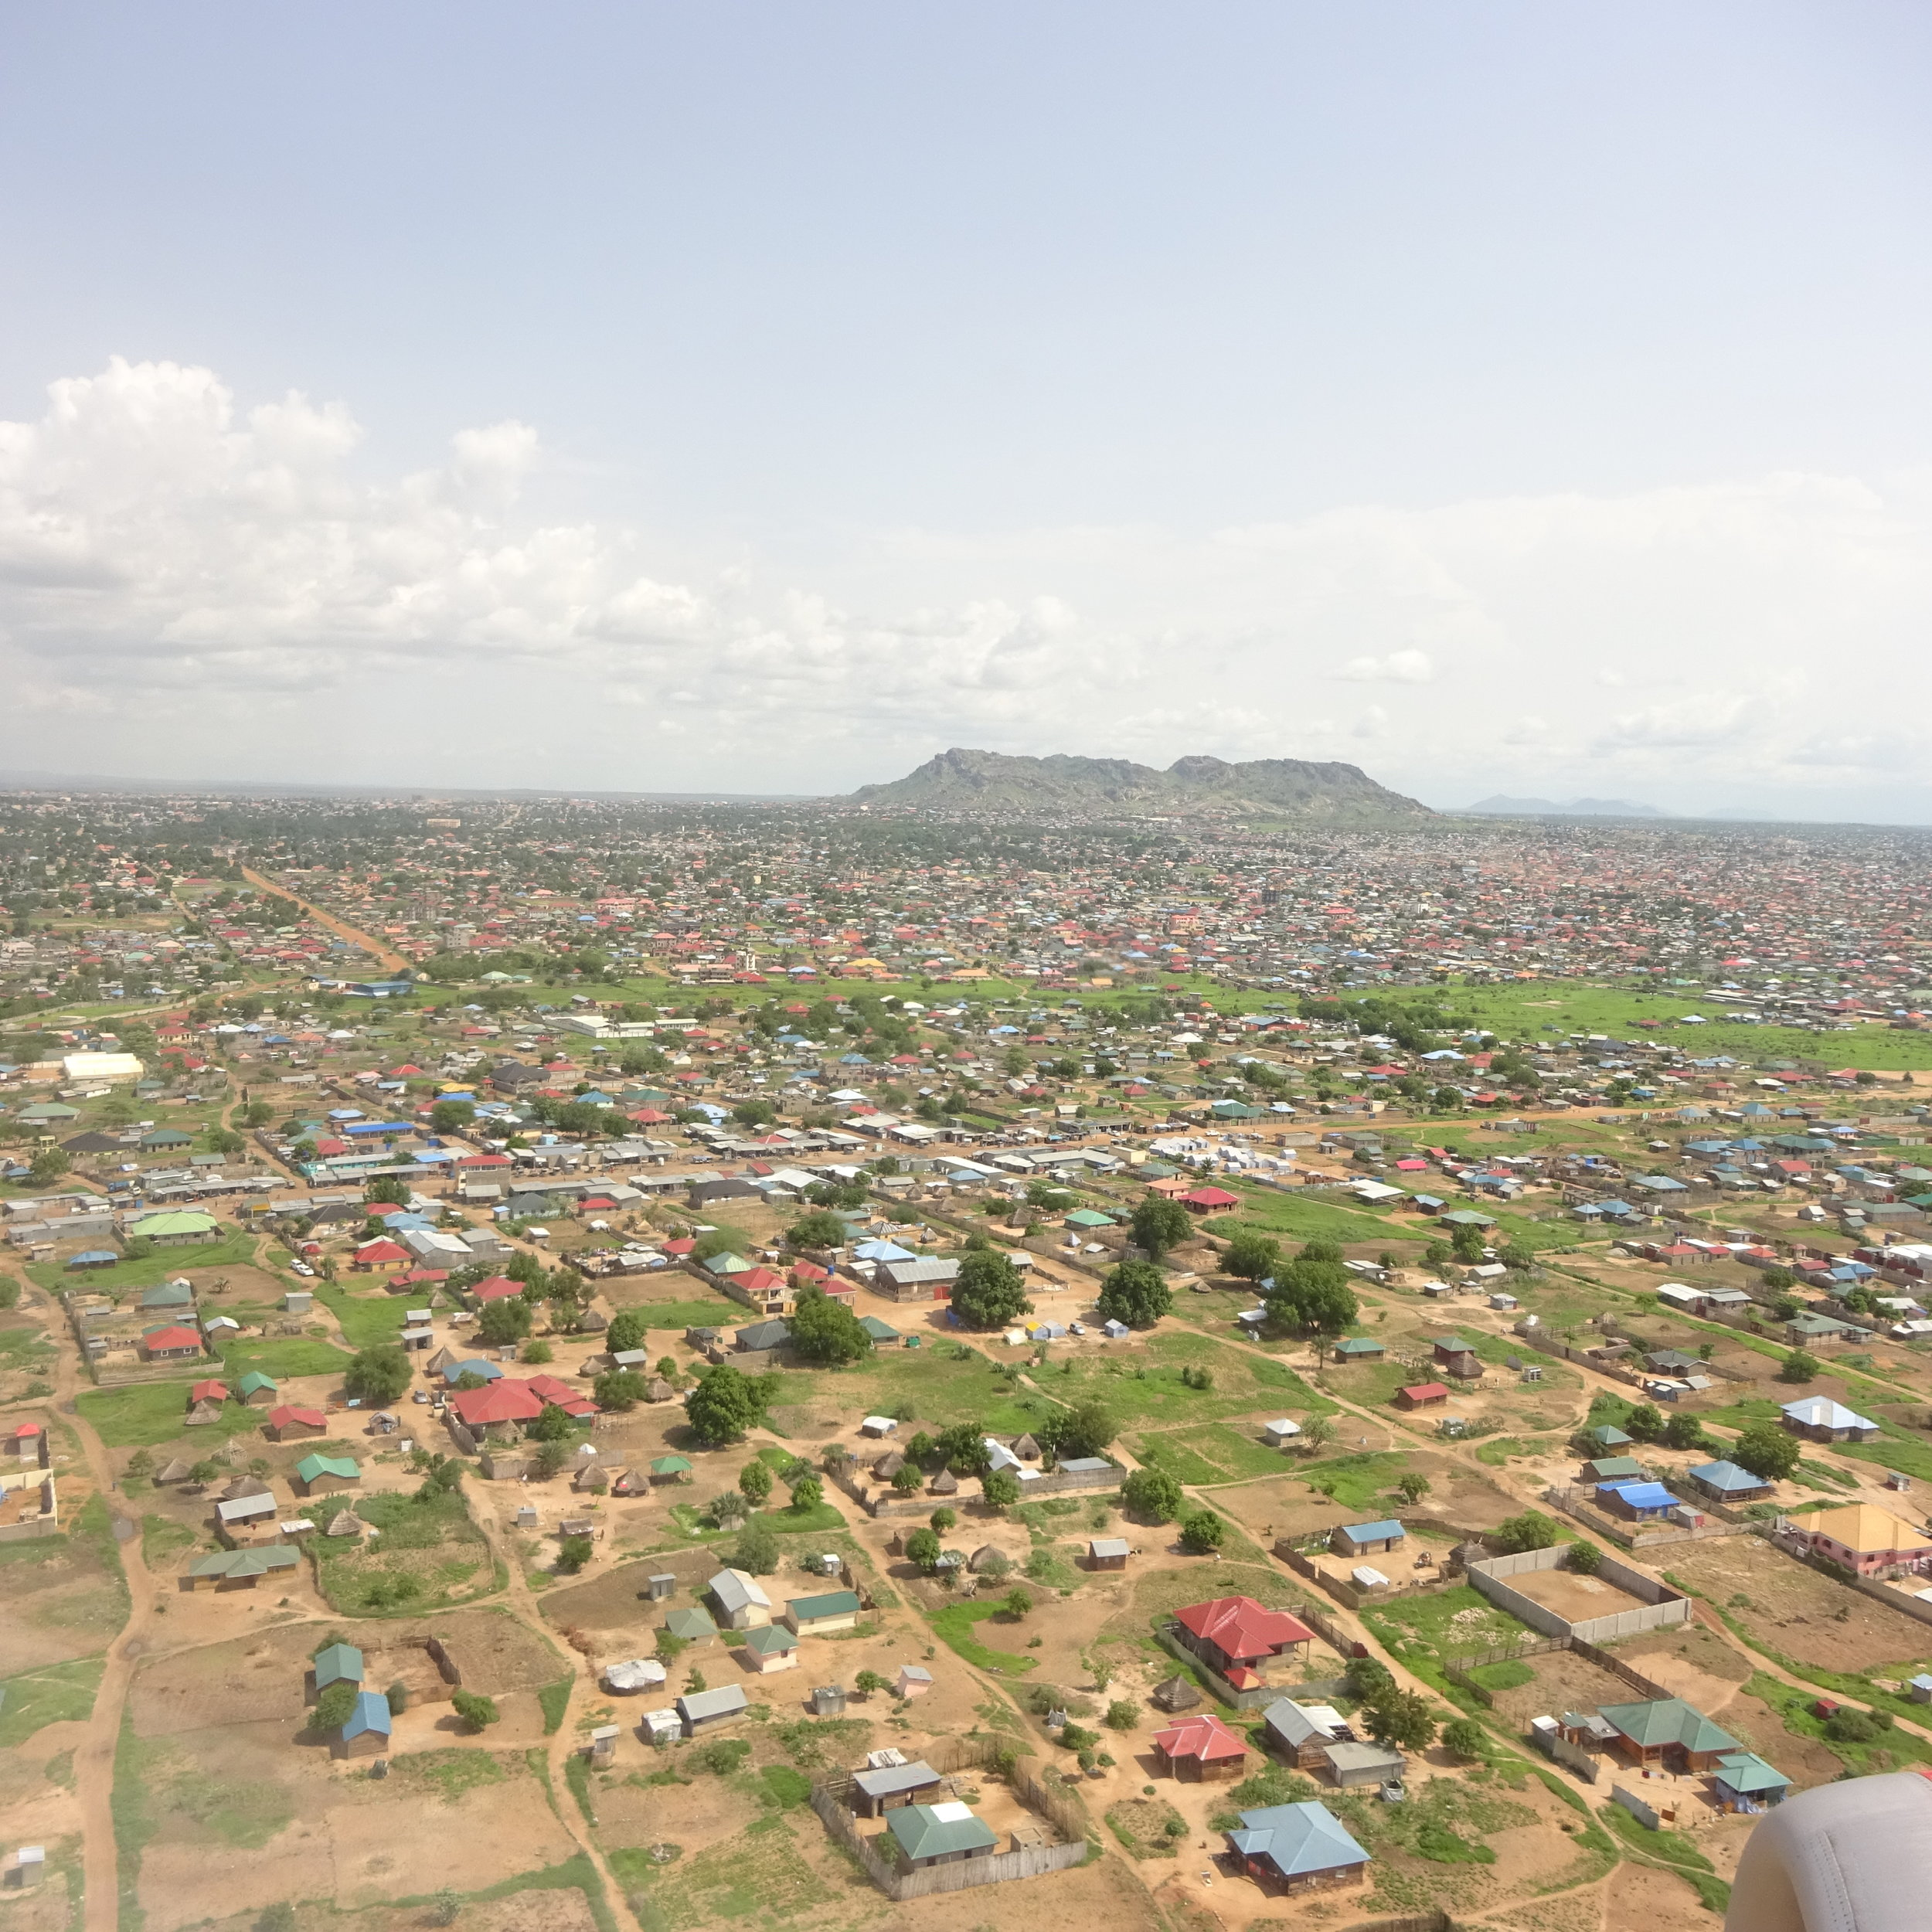 A view of Juba from the plane